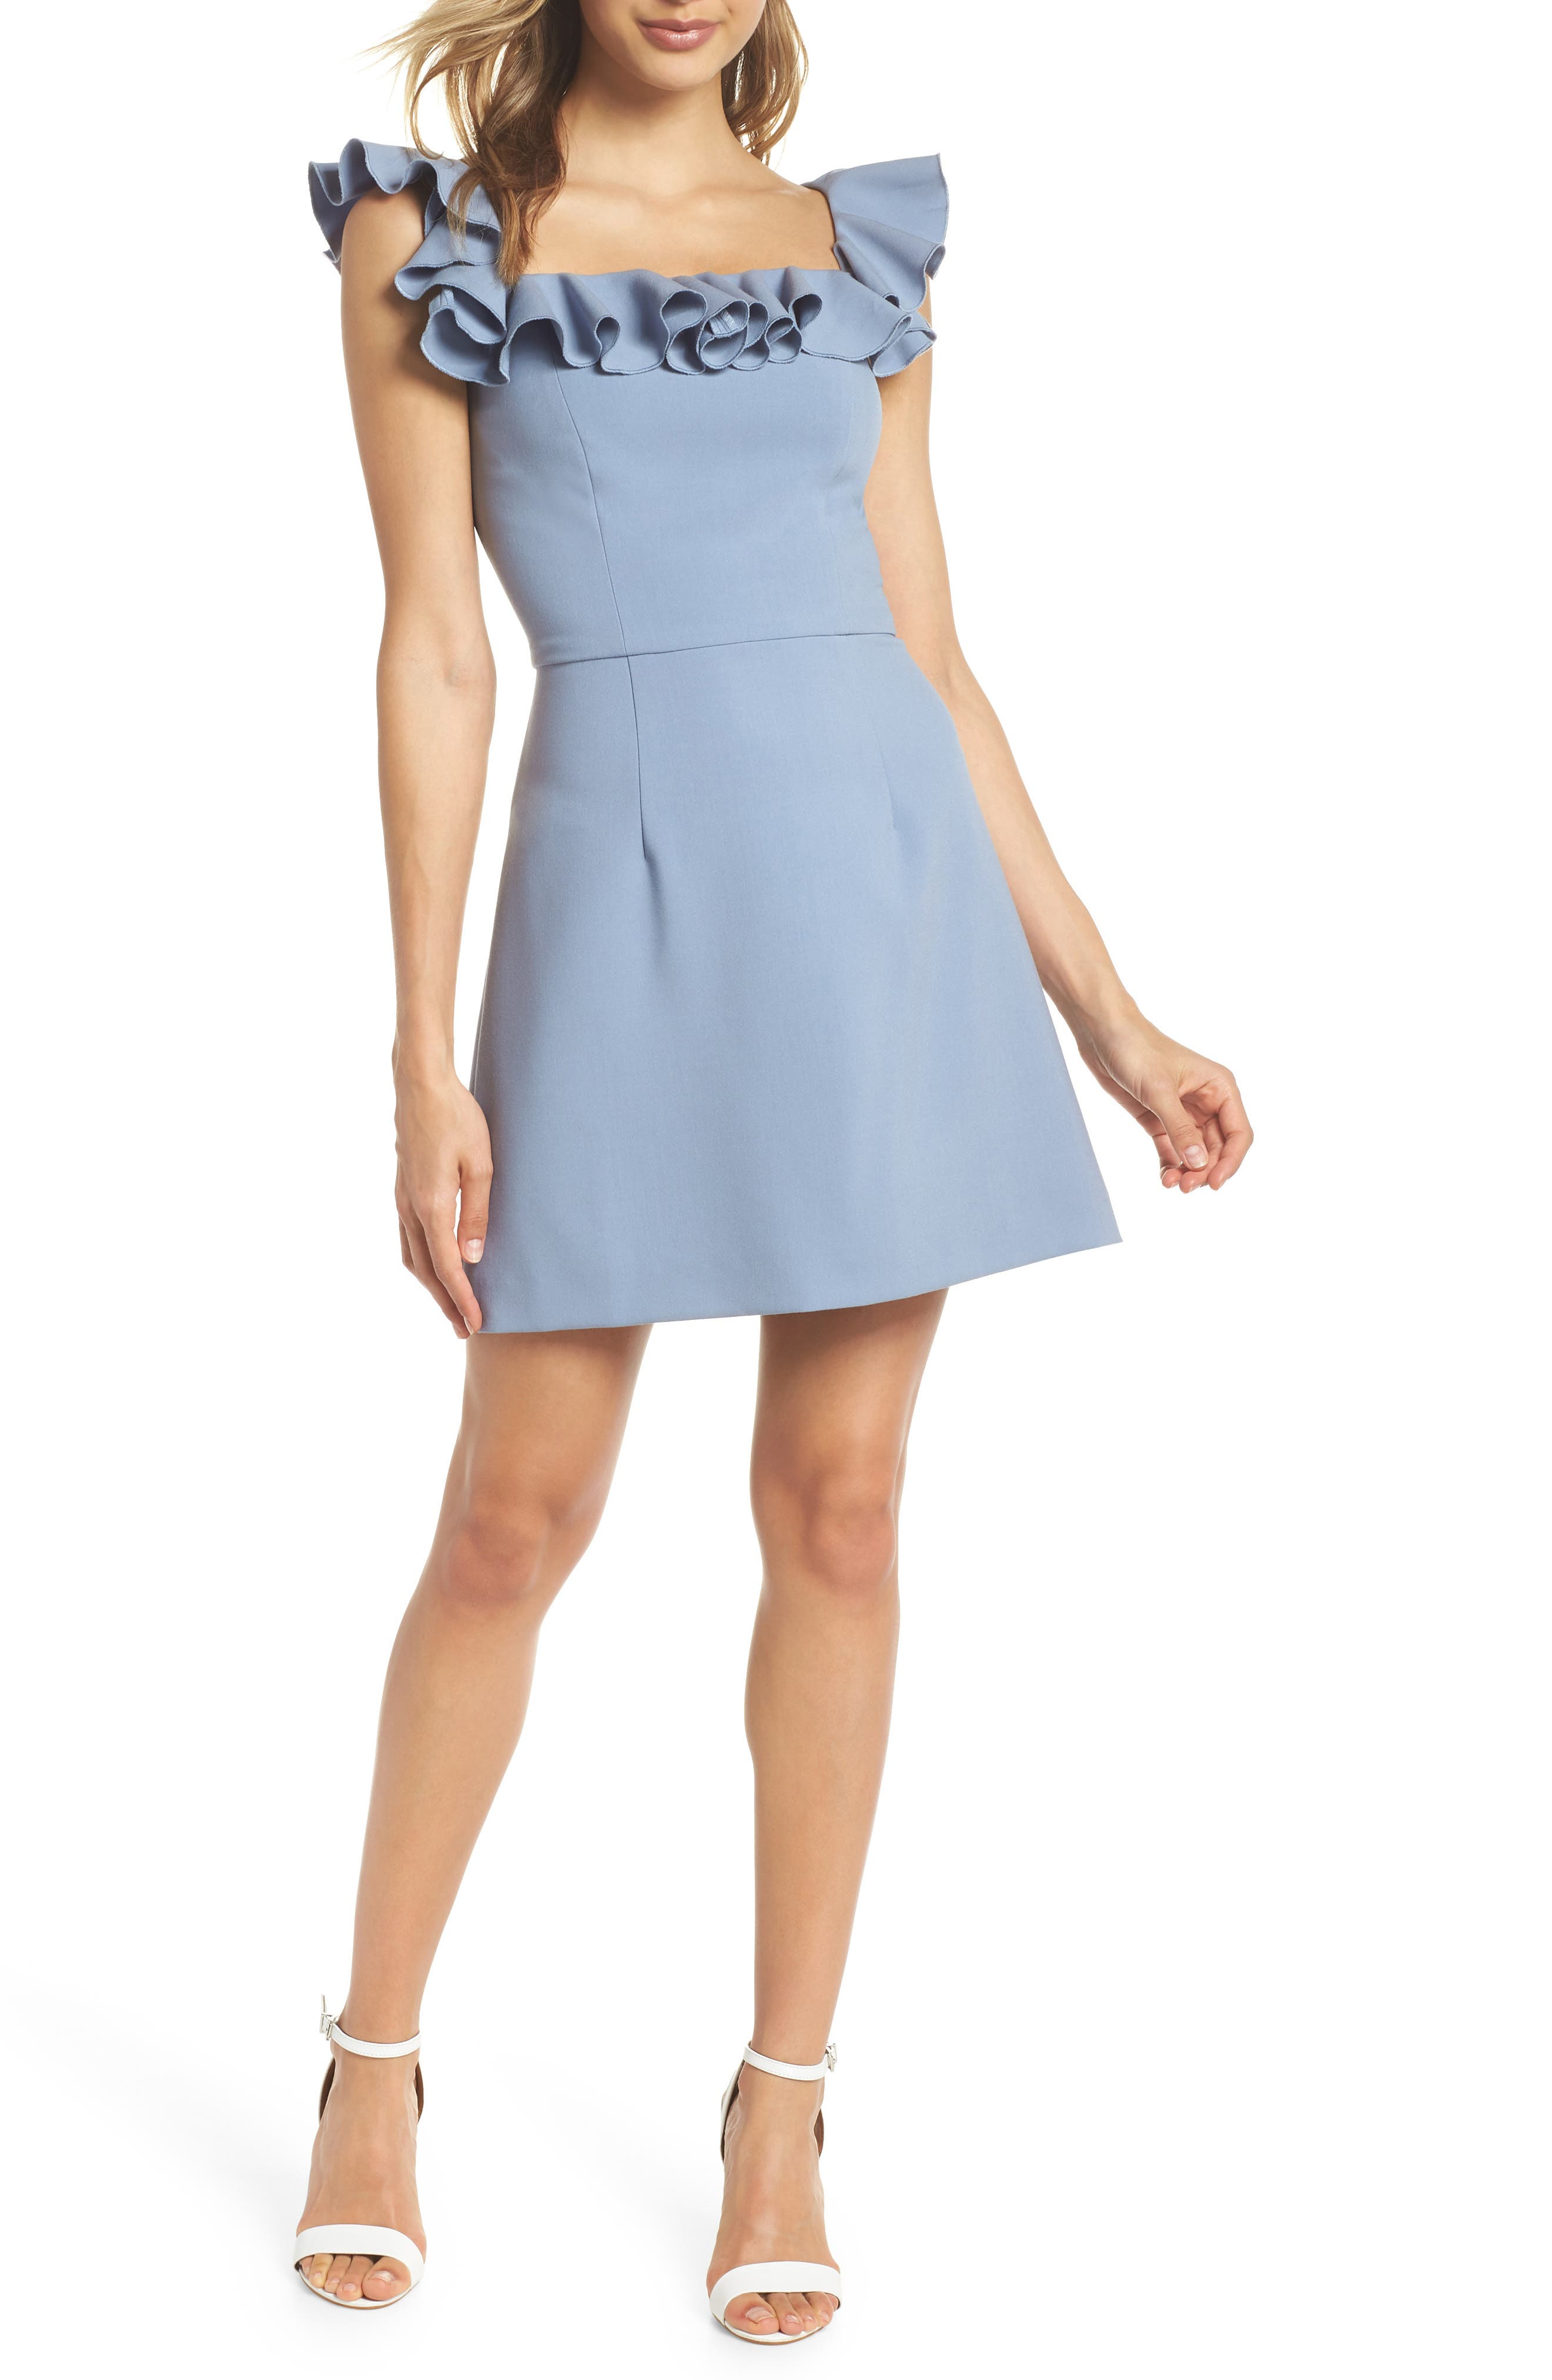 French Connection Dresses On Sale